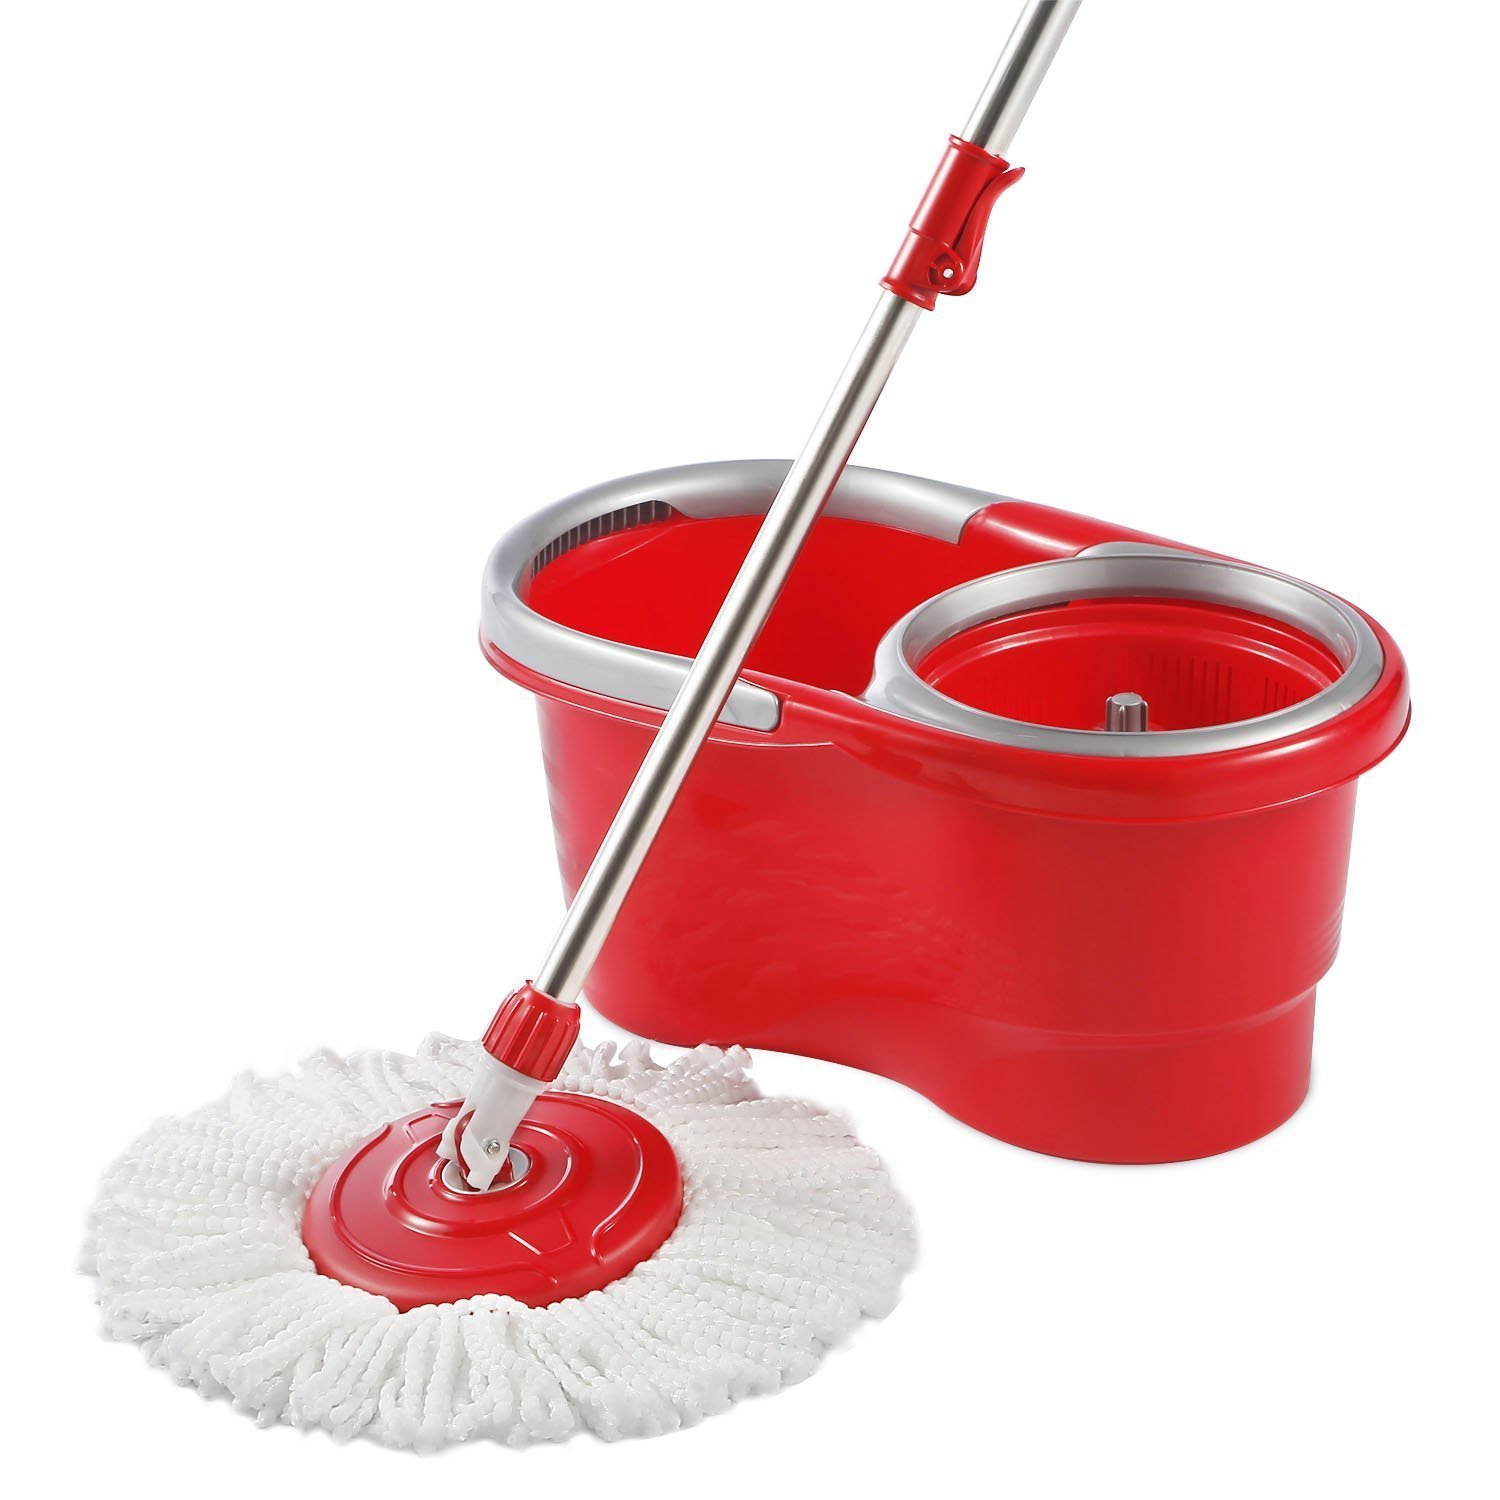 Top 10 Best Spin Mops in 2019 Reviews